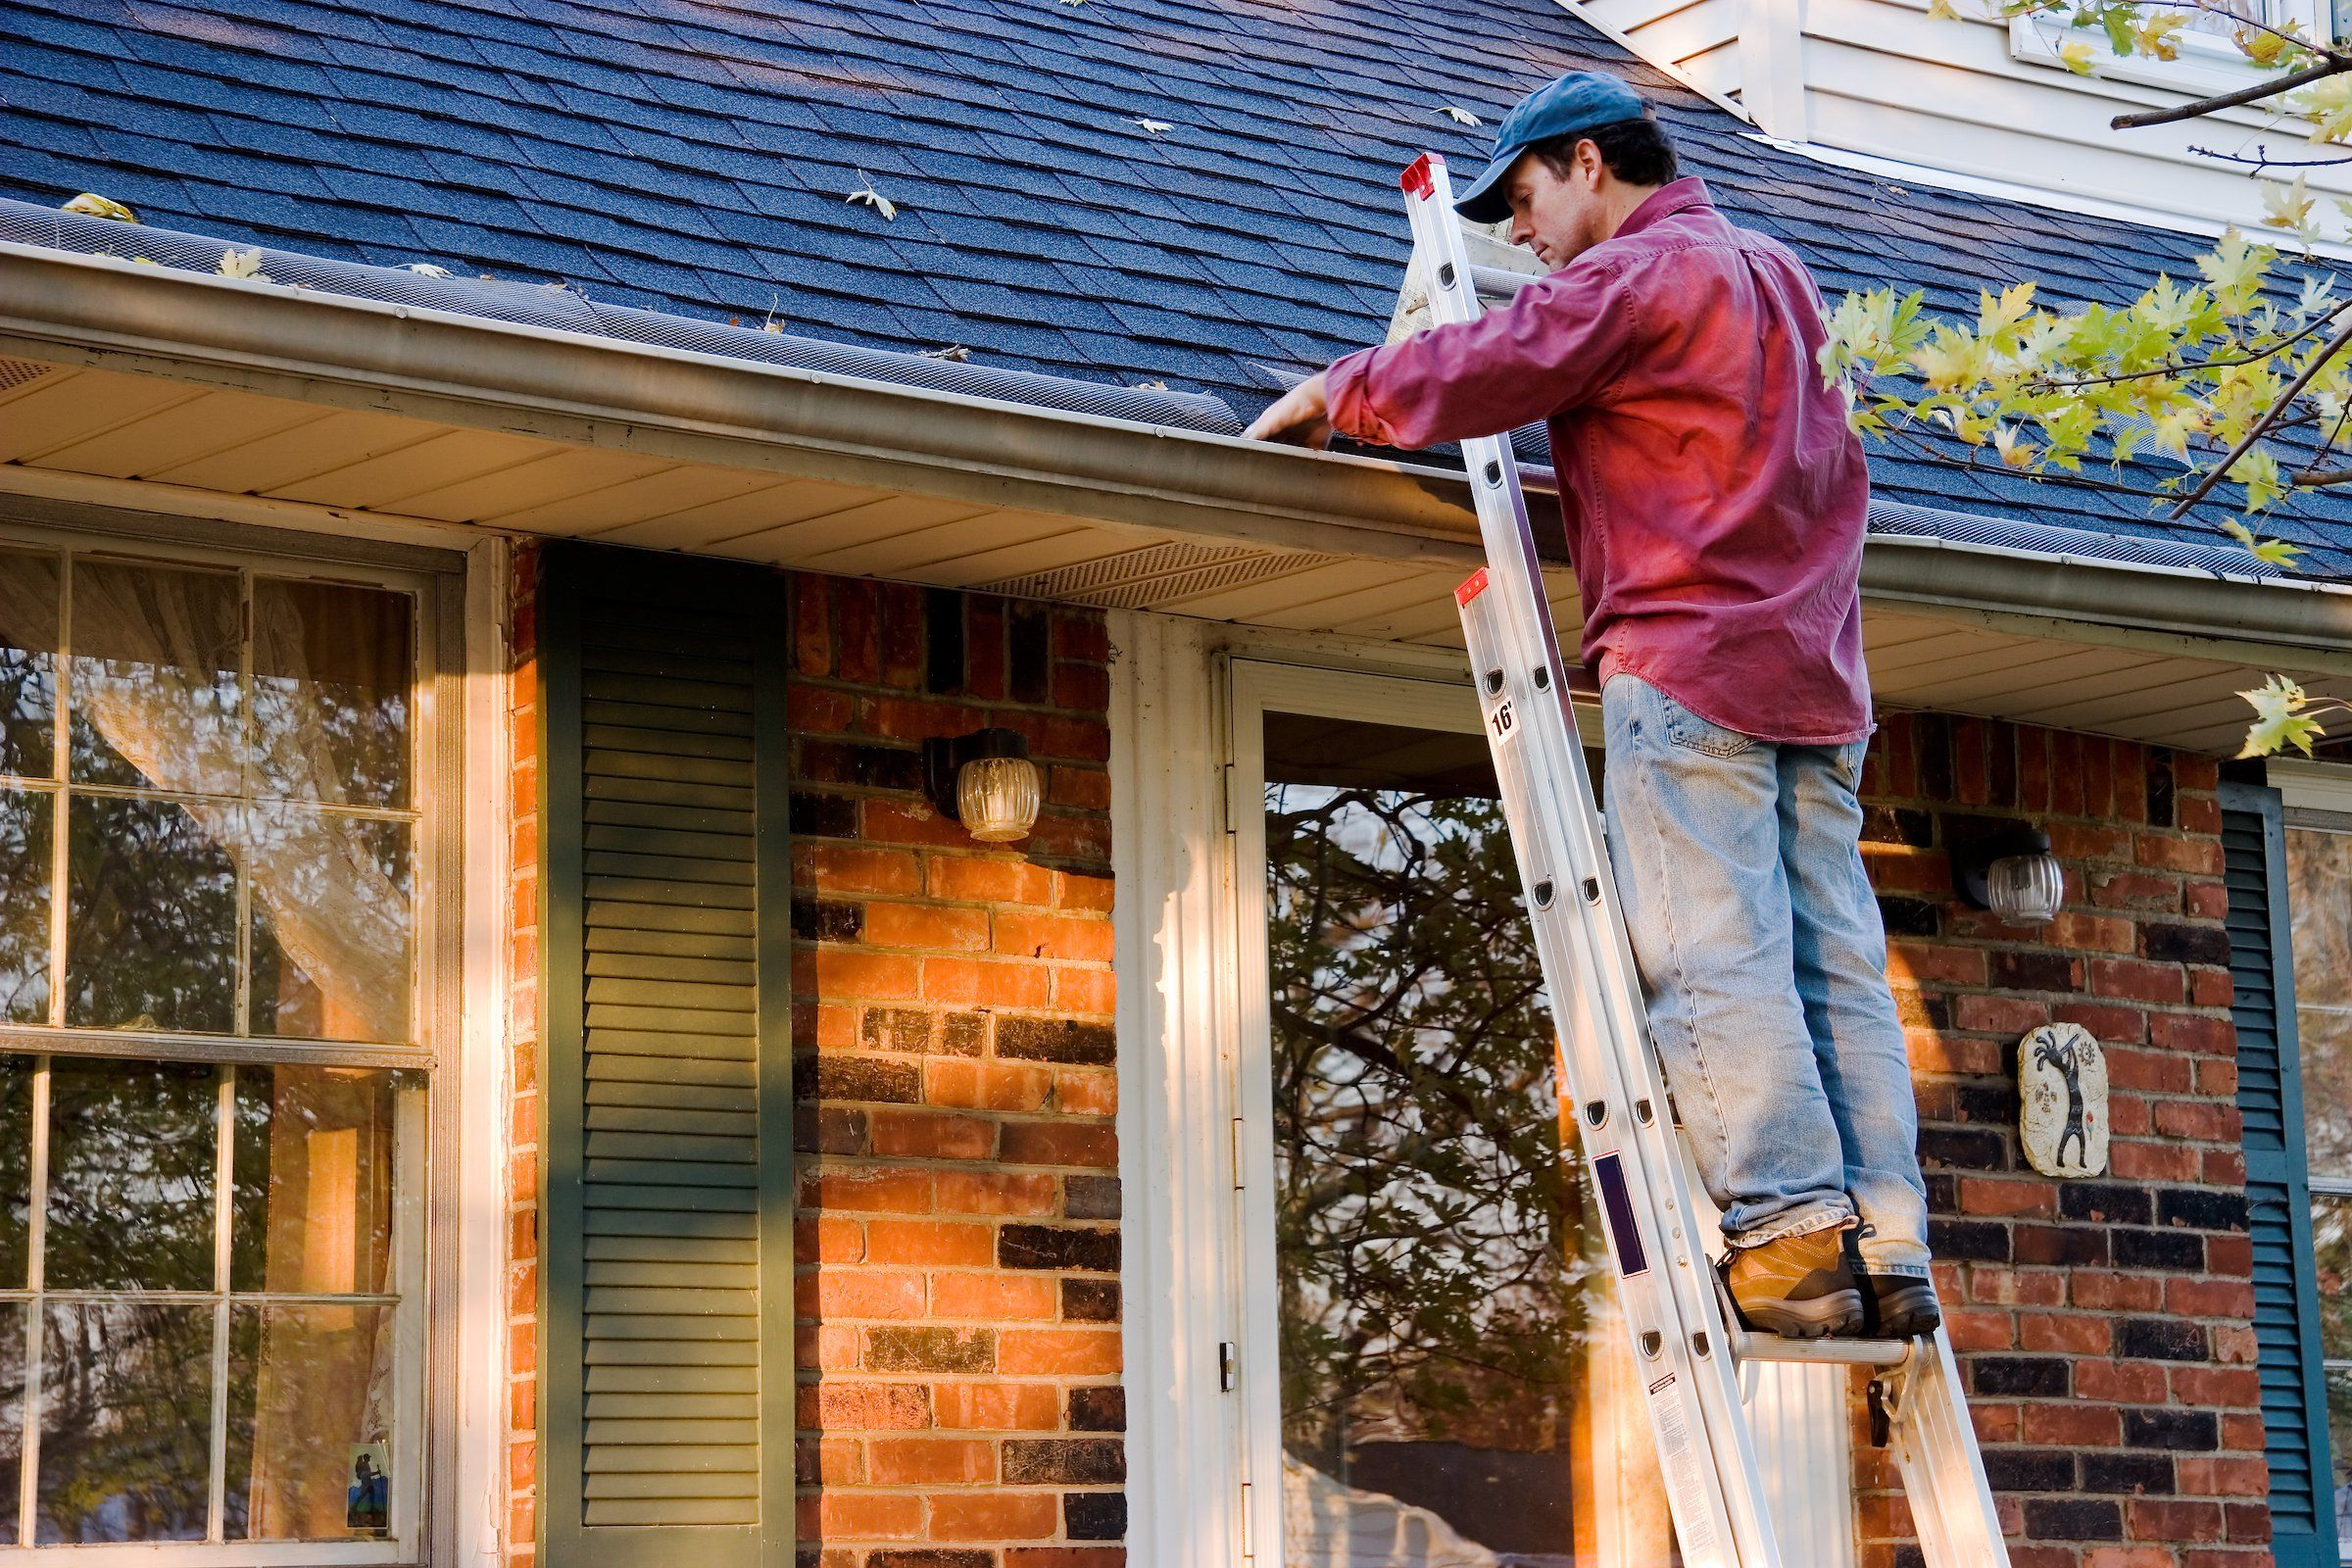 Gutter cleaning near me how to find a reliable company